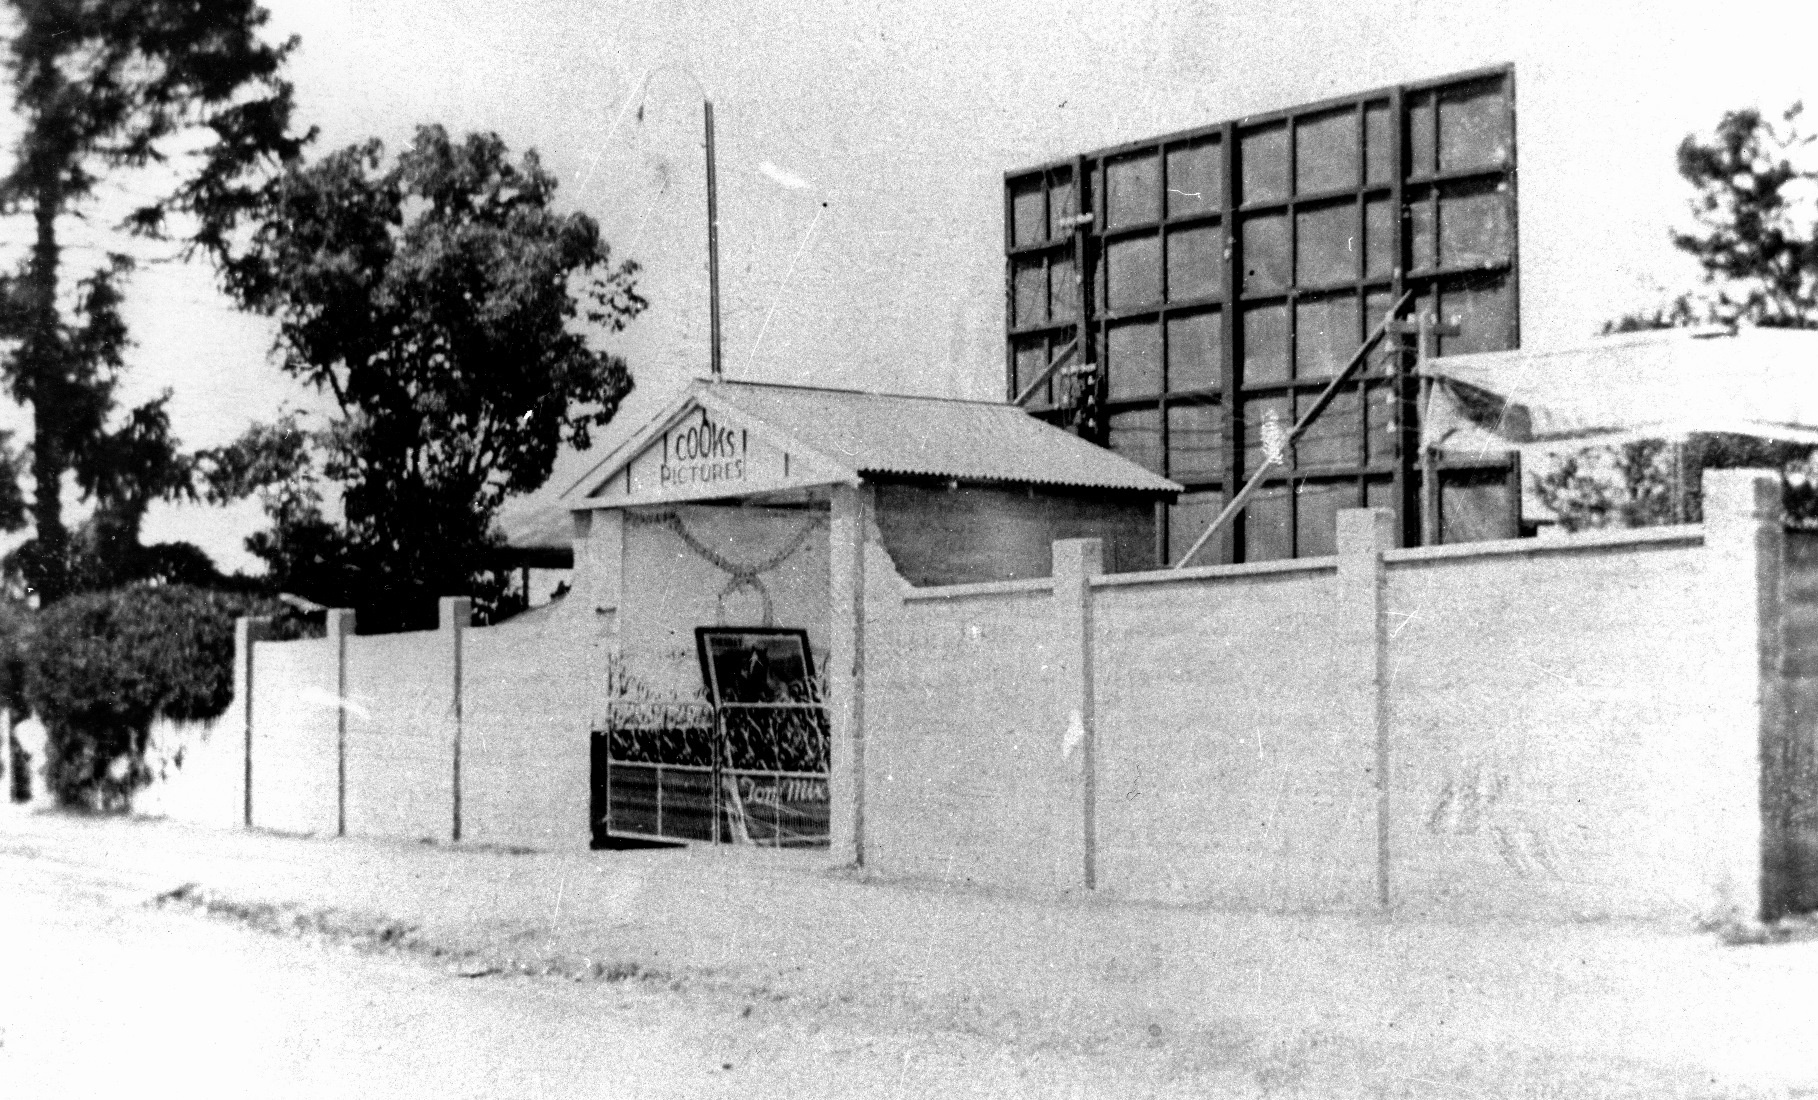 Cinema with fence and Cook's Theatre sign | Image: Oxley-Chelmer History Group